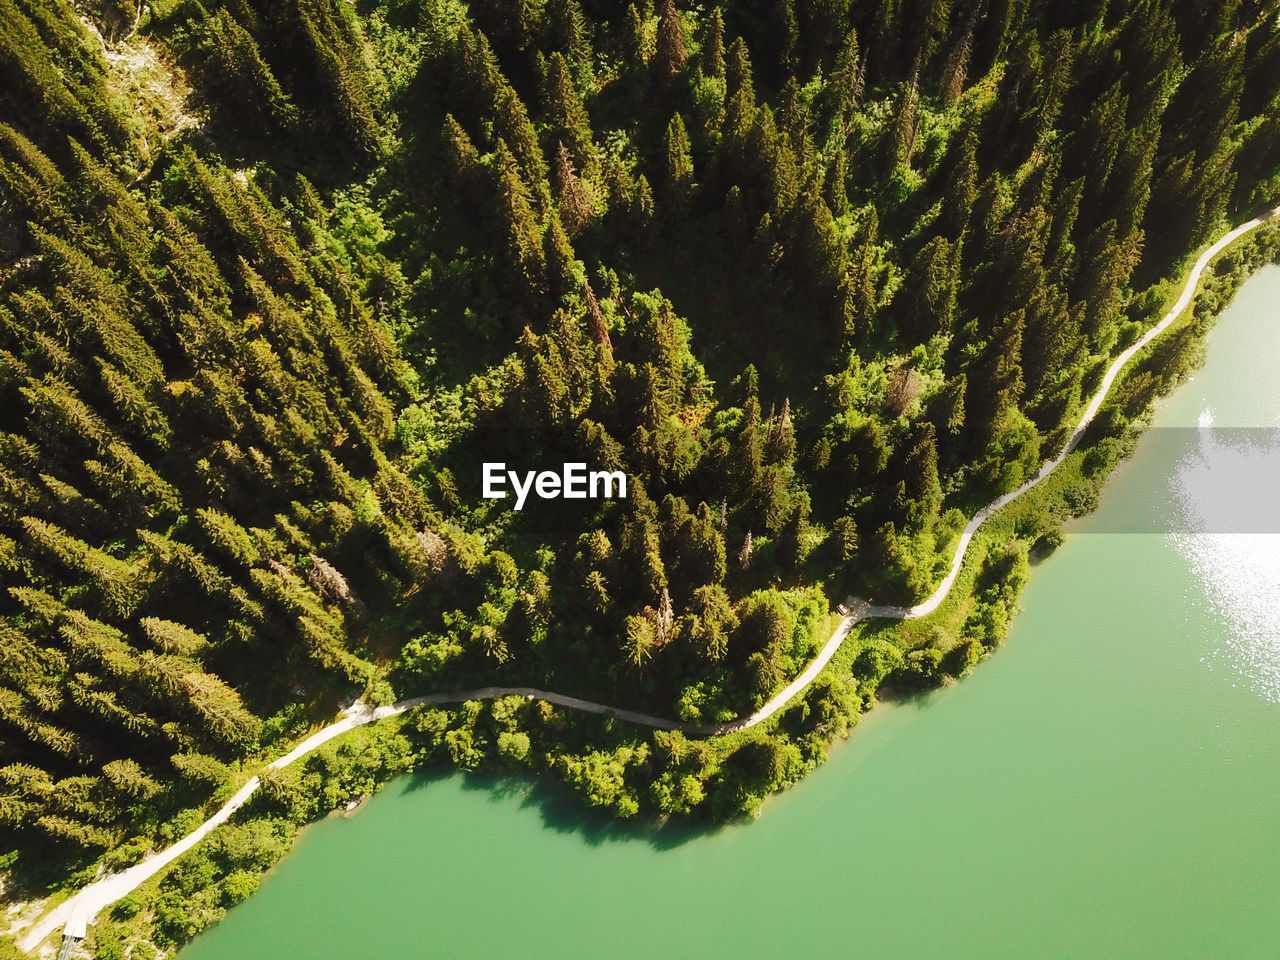 HIGH ANGLE VIEW OF TREES BY CALM LAKE